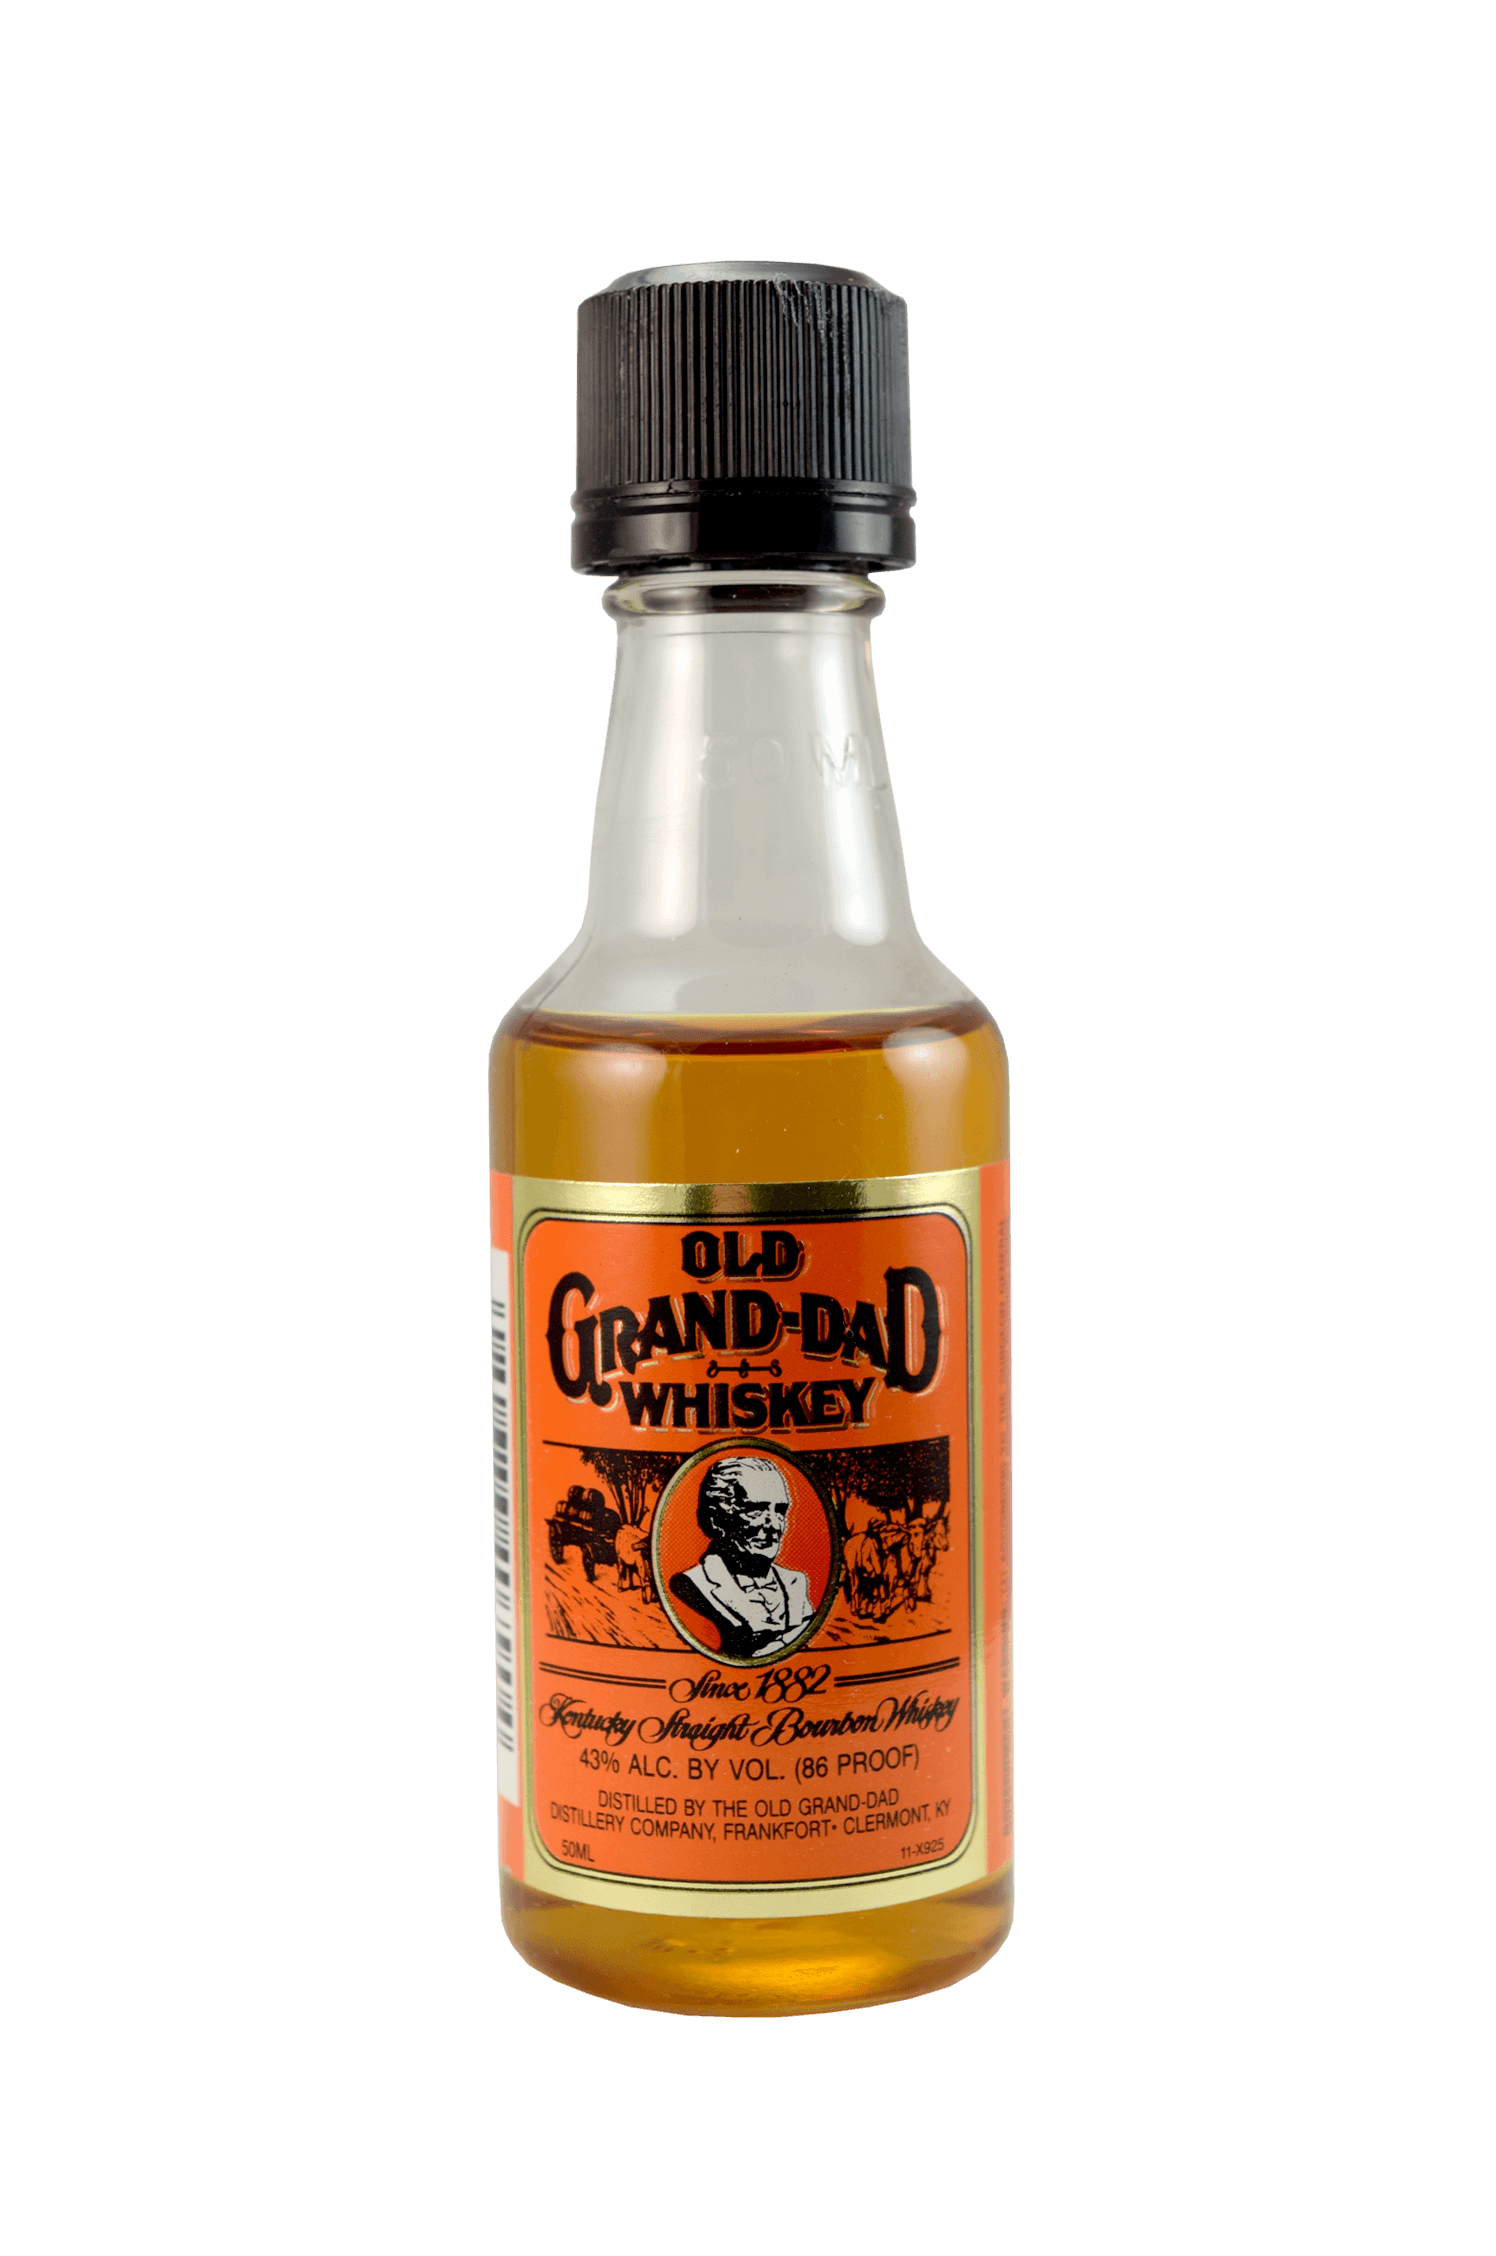 Old Grand – Dad Whiskey